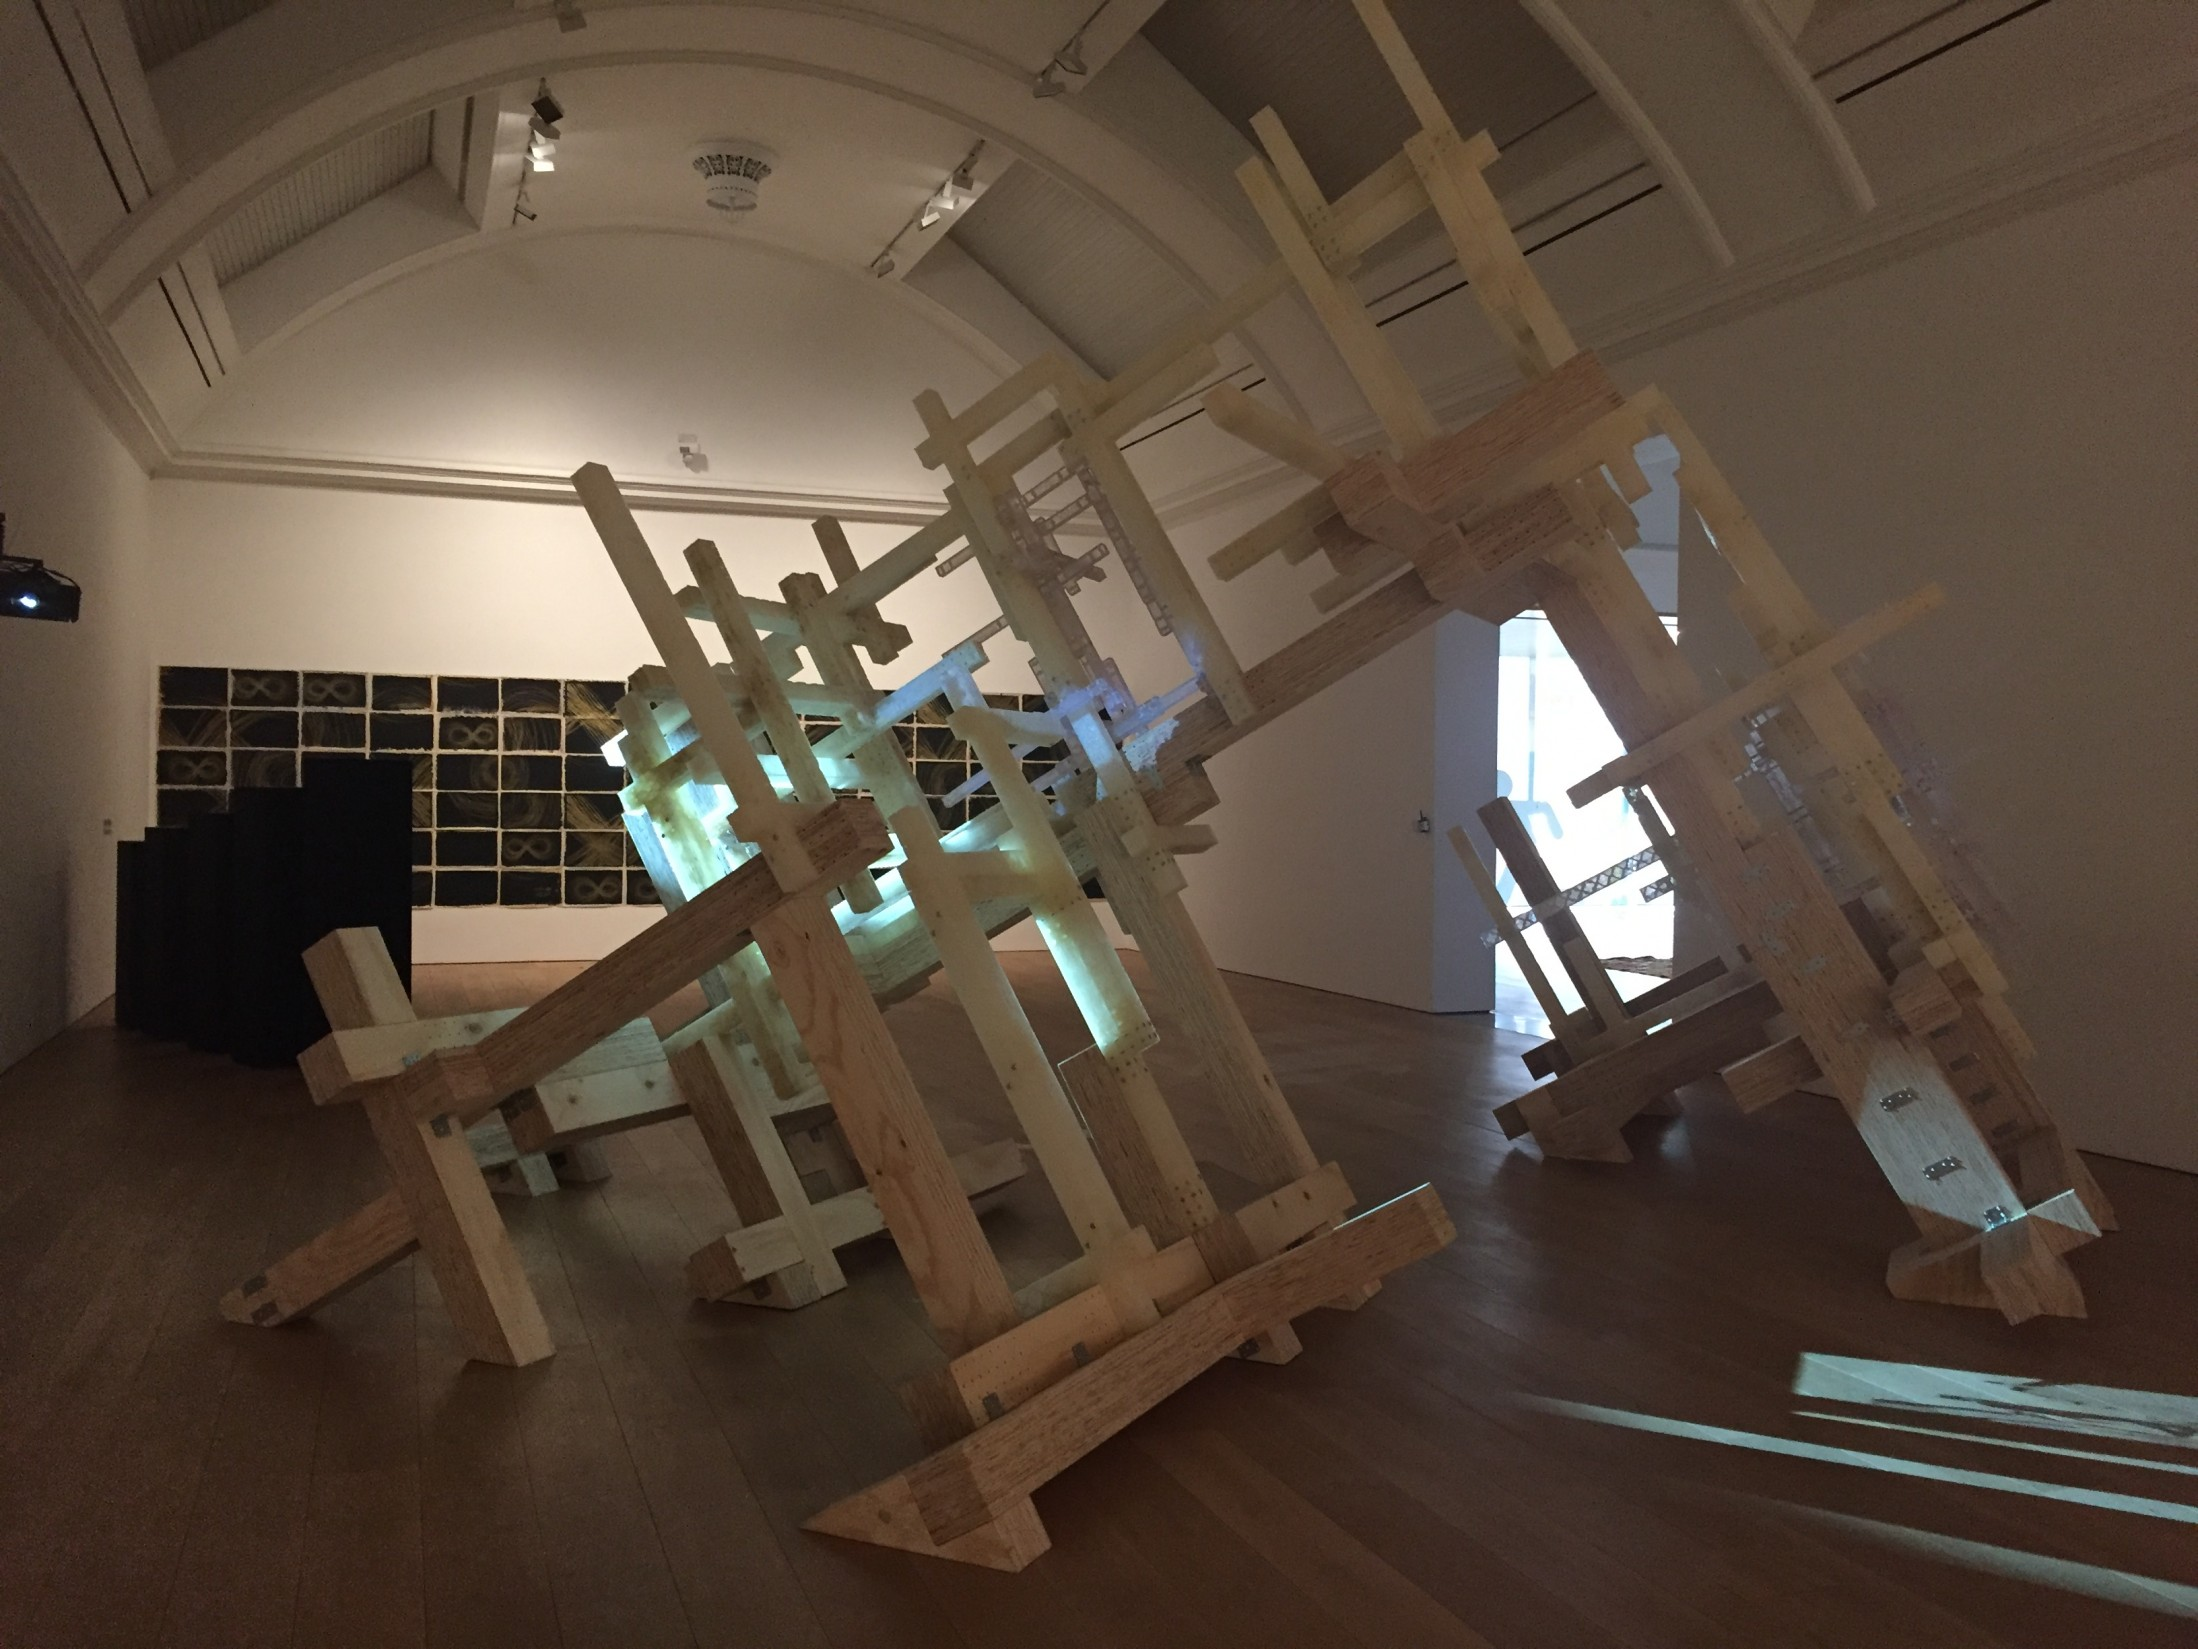 Twilight Language at The Whitworth Art Gallery